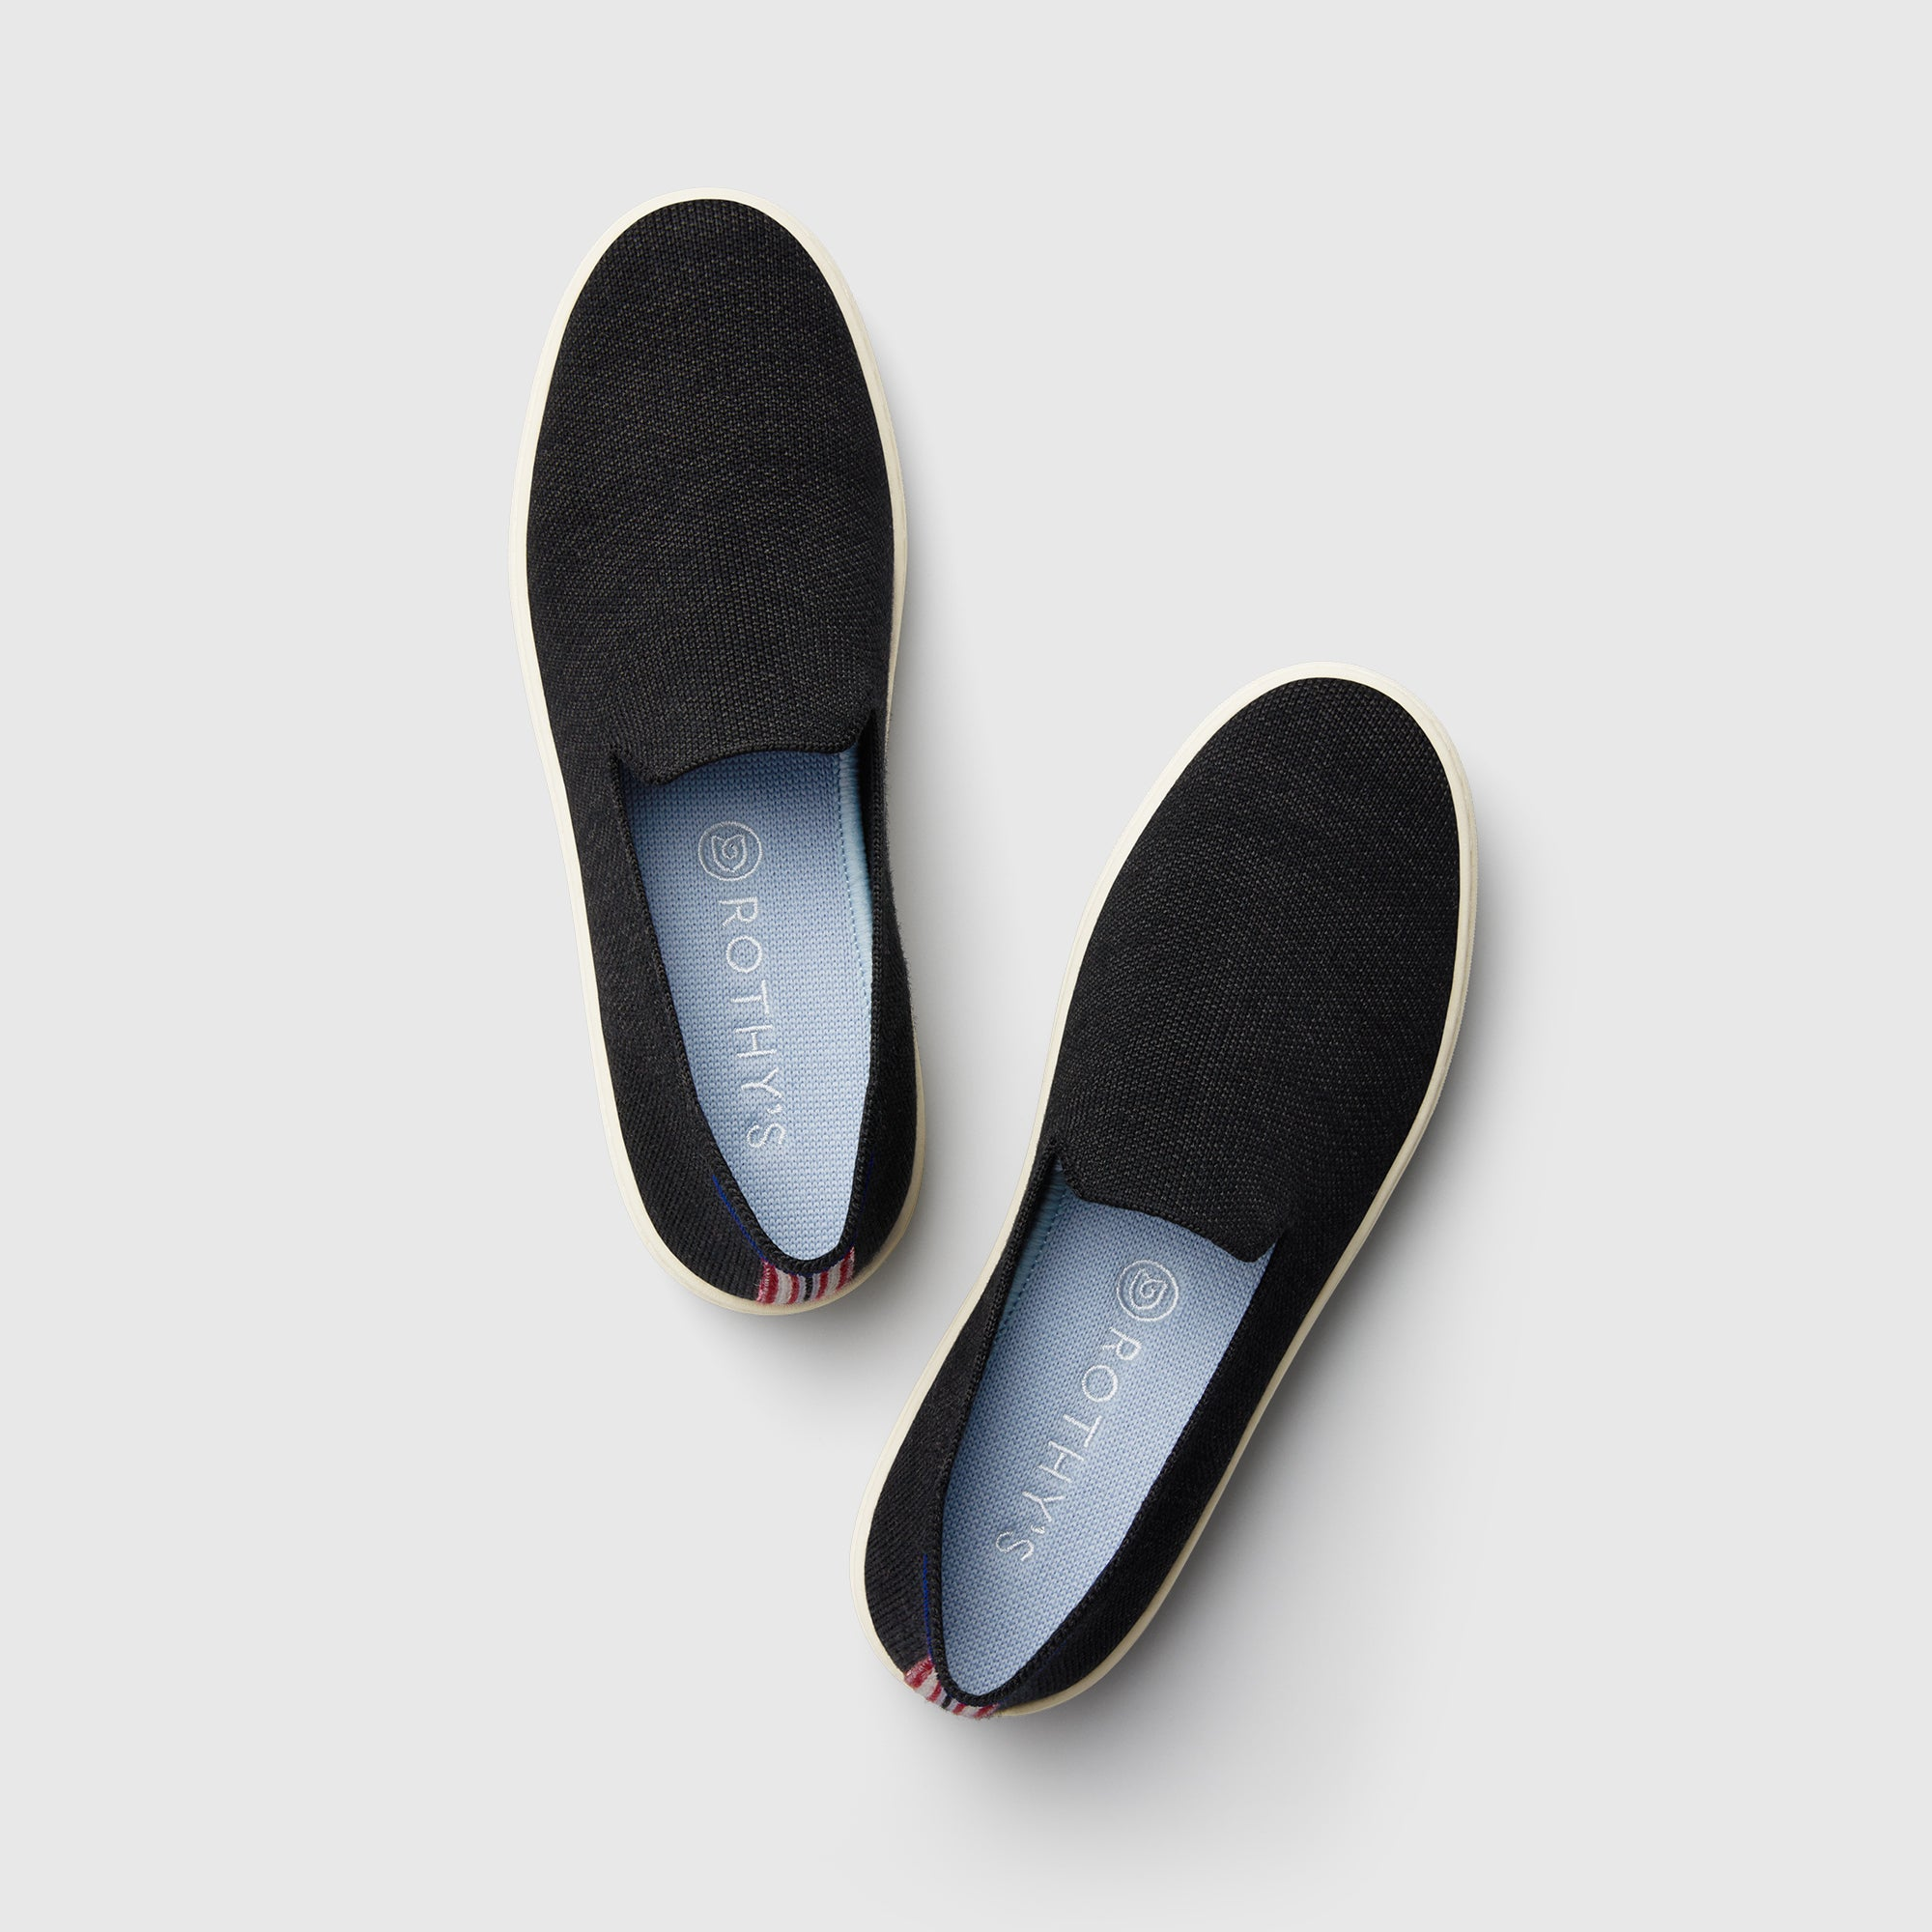 The Merino Sneaker in Soft Black shown from the top view.